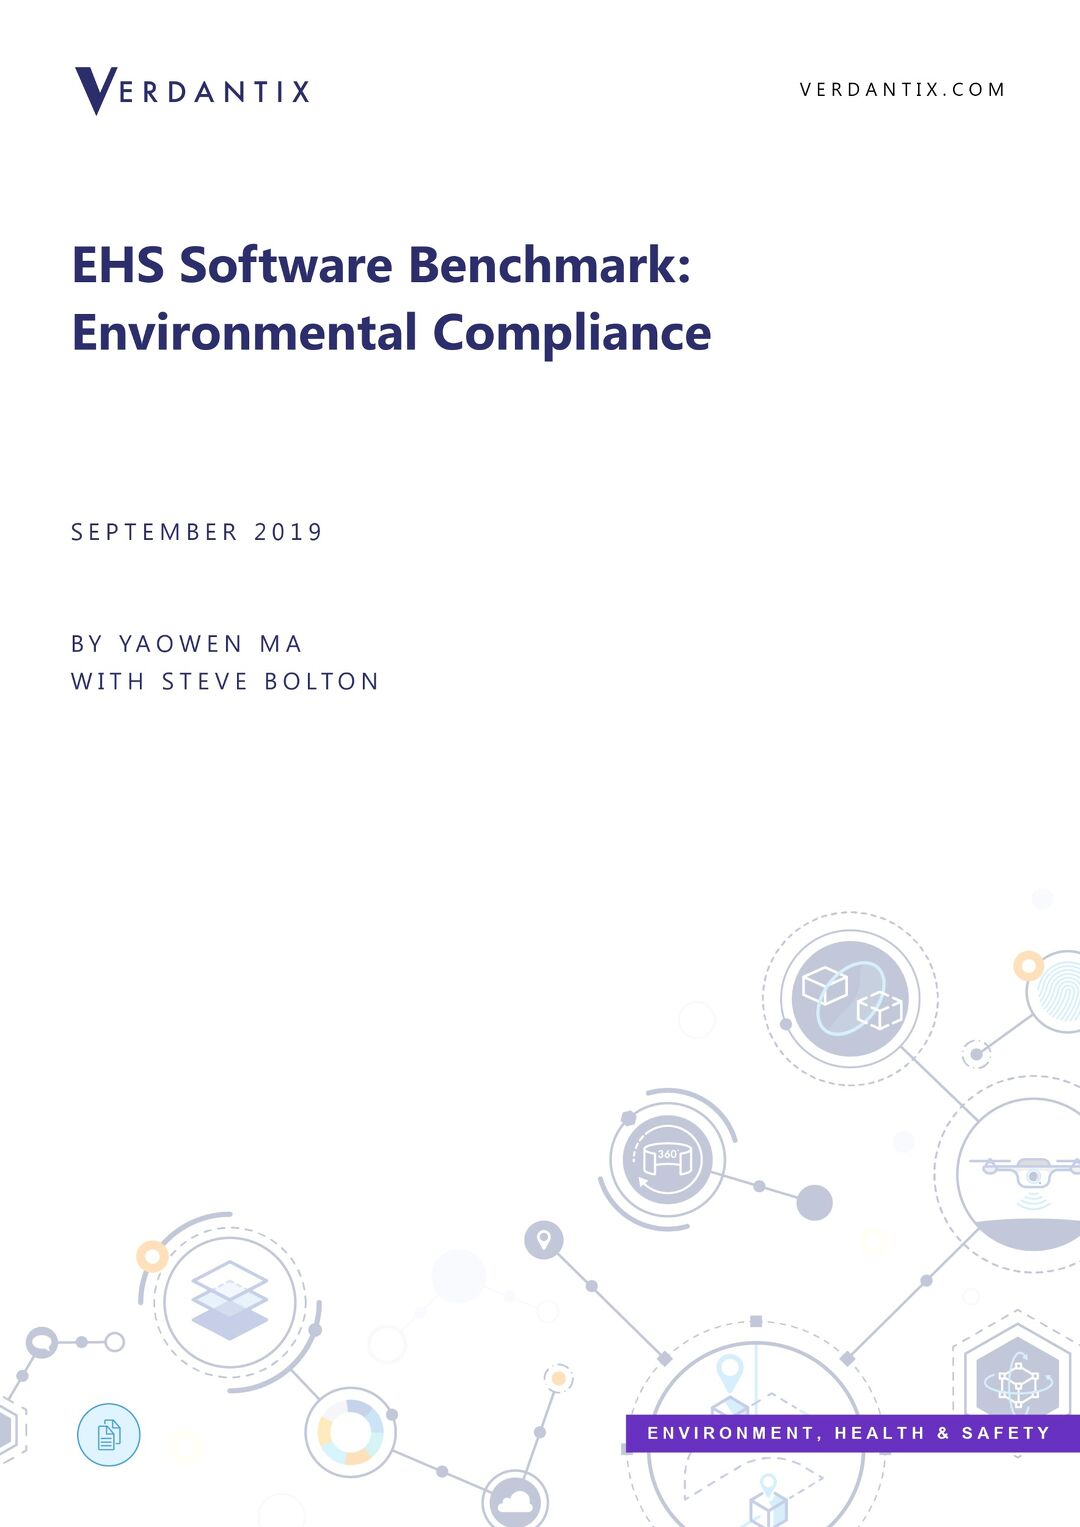 Verdantix EHS Software Benchmark: Environmental Compliance